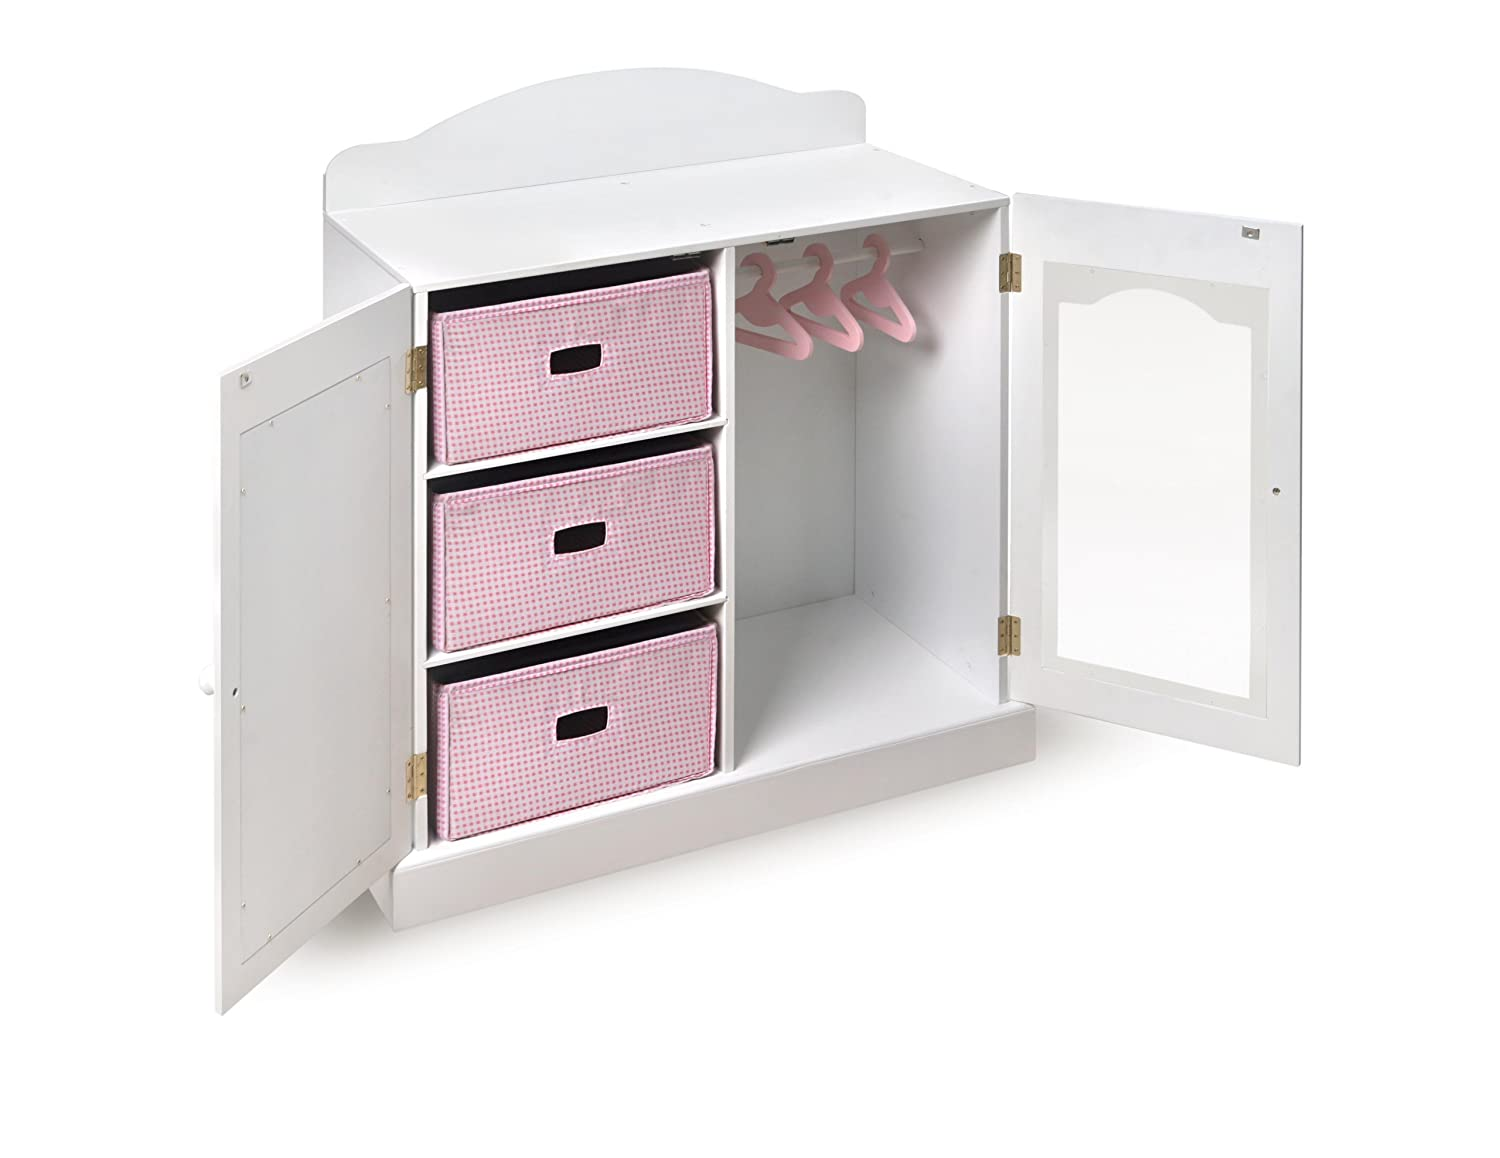 Merveilleux Amazon.com: Badger Basket Mirrored Doll Armoire With 3 Baskets U0026 3 Hangers  (fits American Girl Dolls), White: Toys U0026 Games